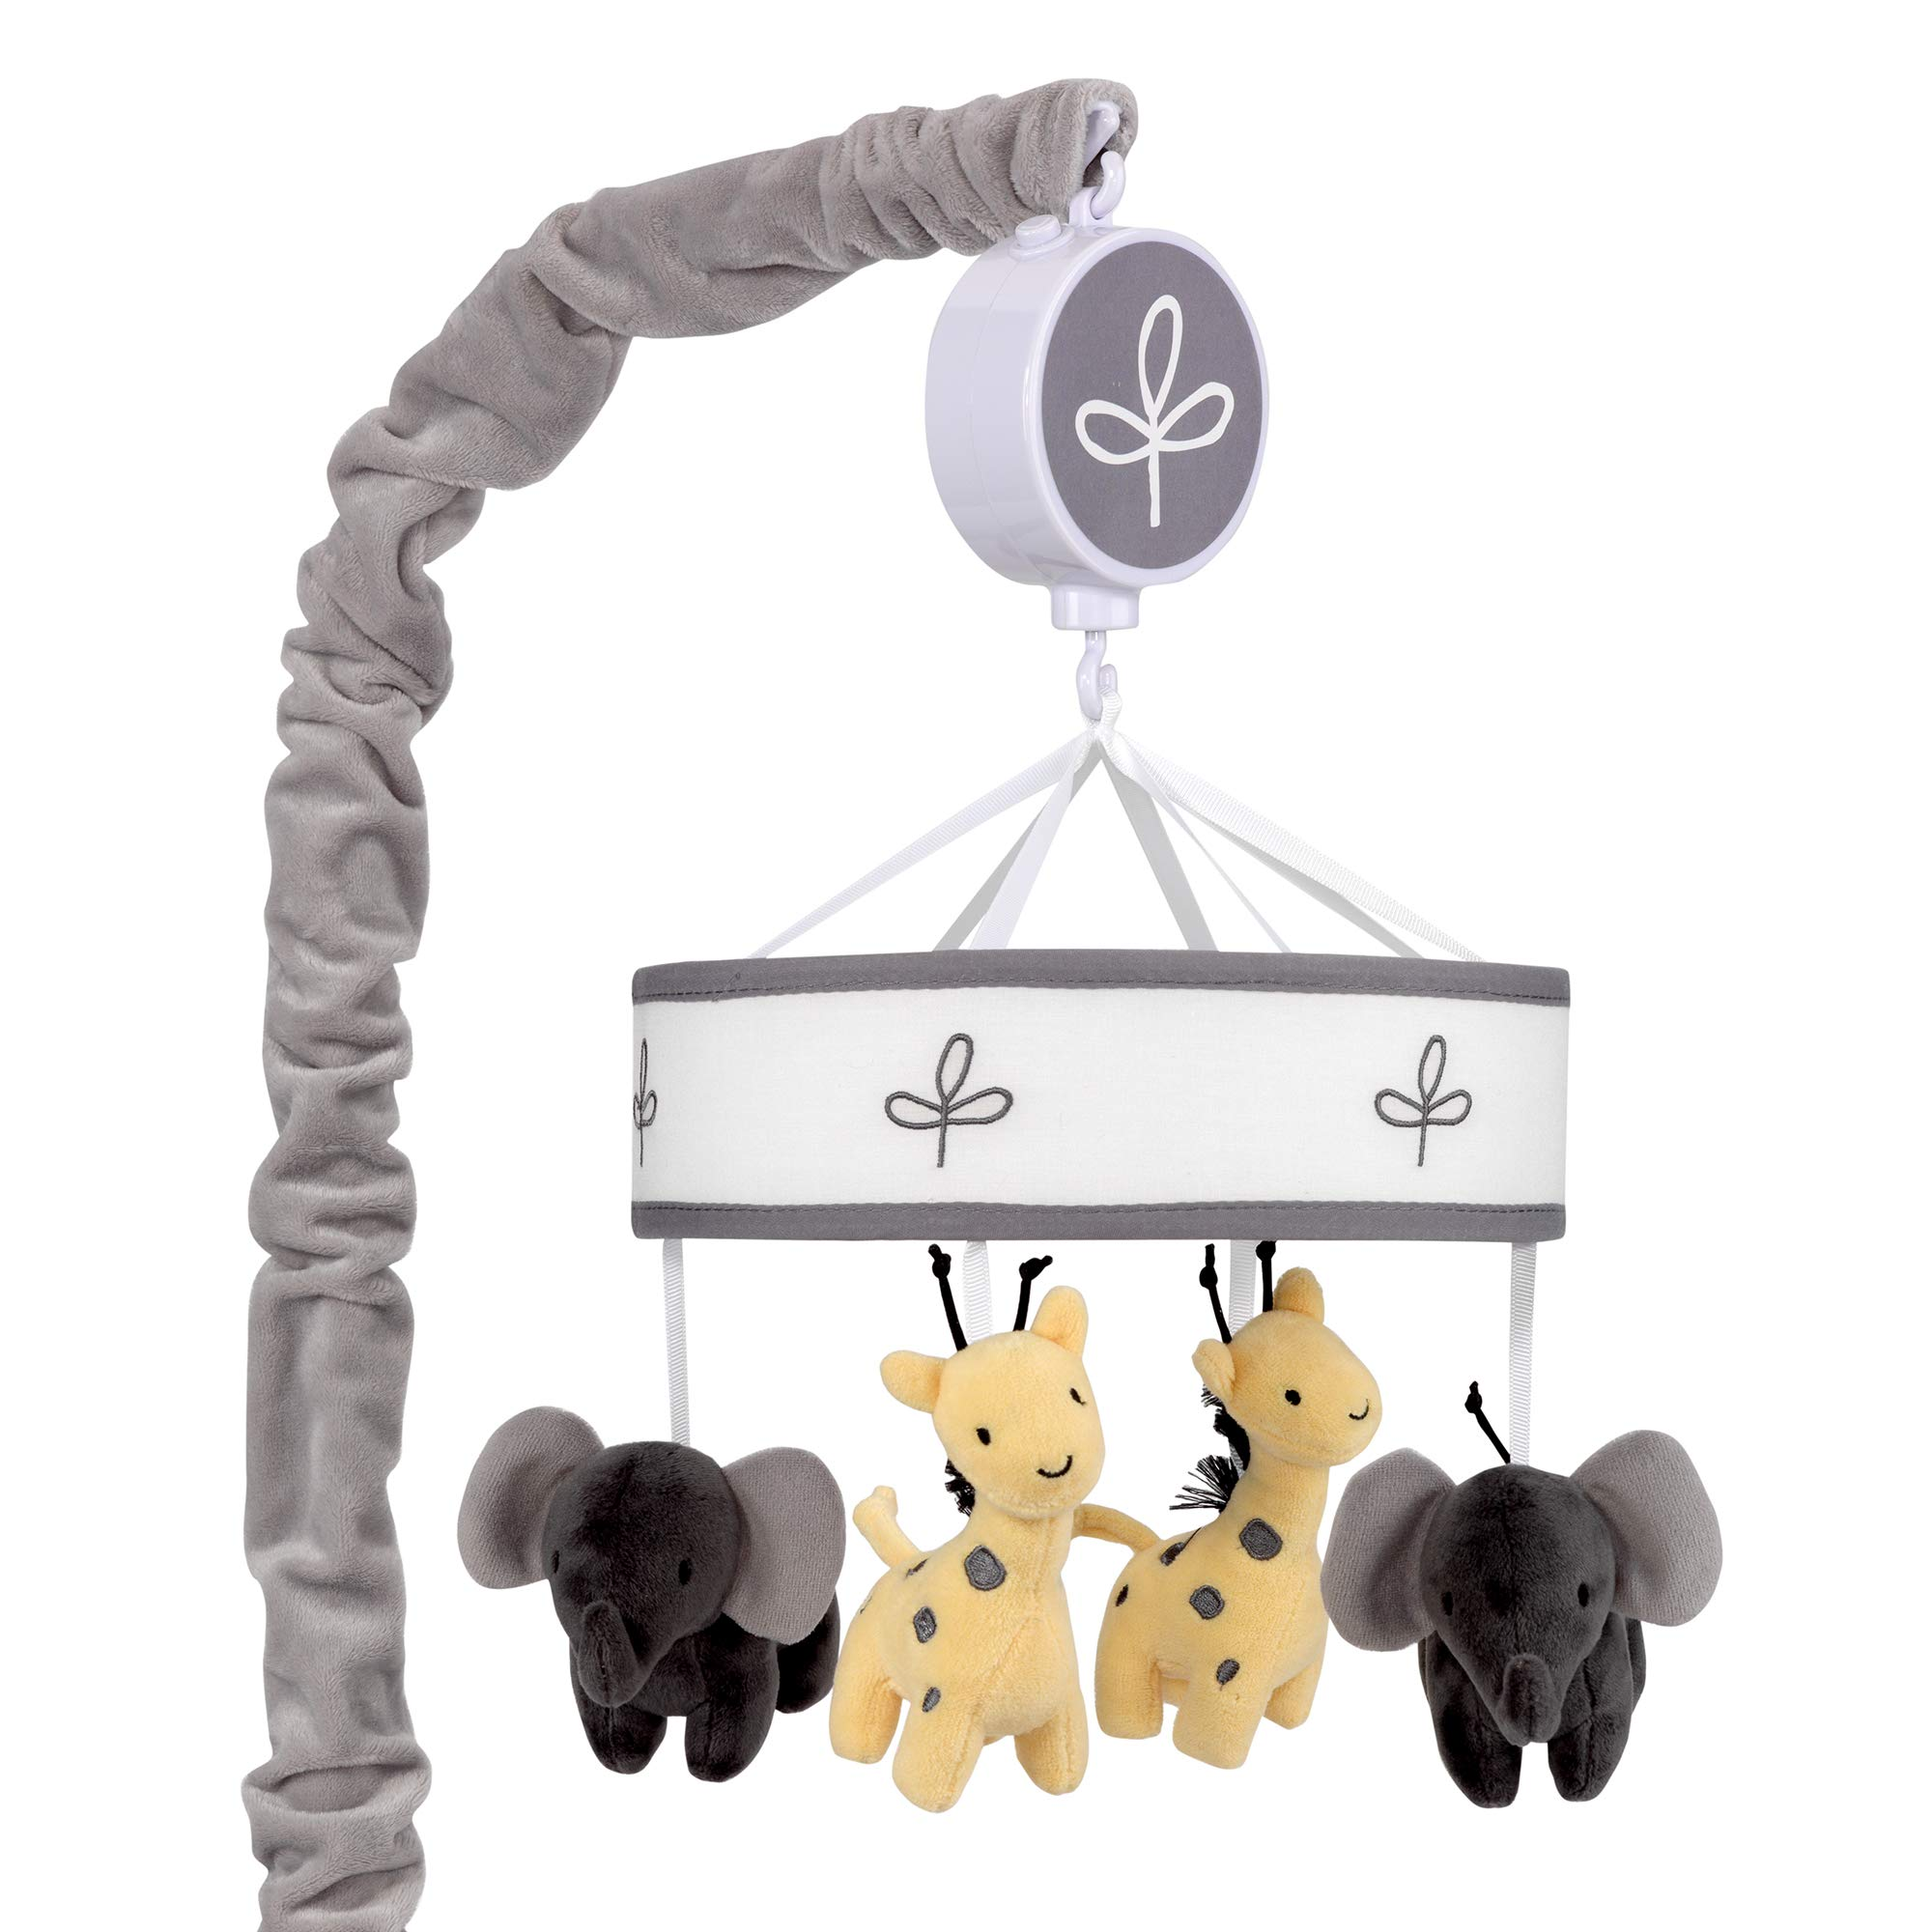 Lambs & Ivy Me & Mama Musical Baby Crib Mobile - Gray, White, Animals, Safari